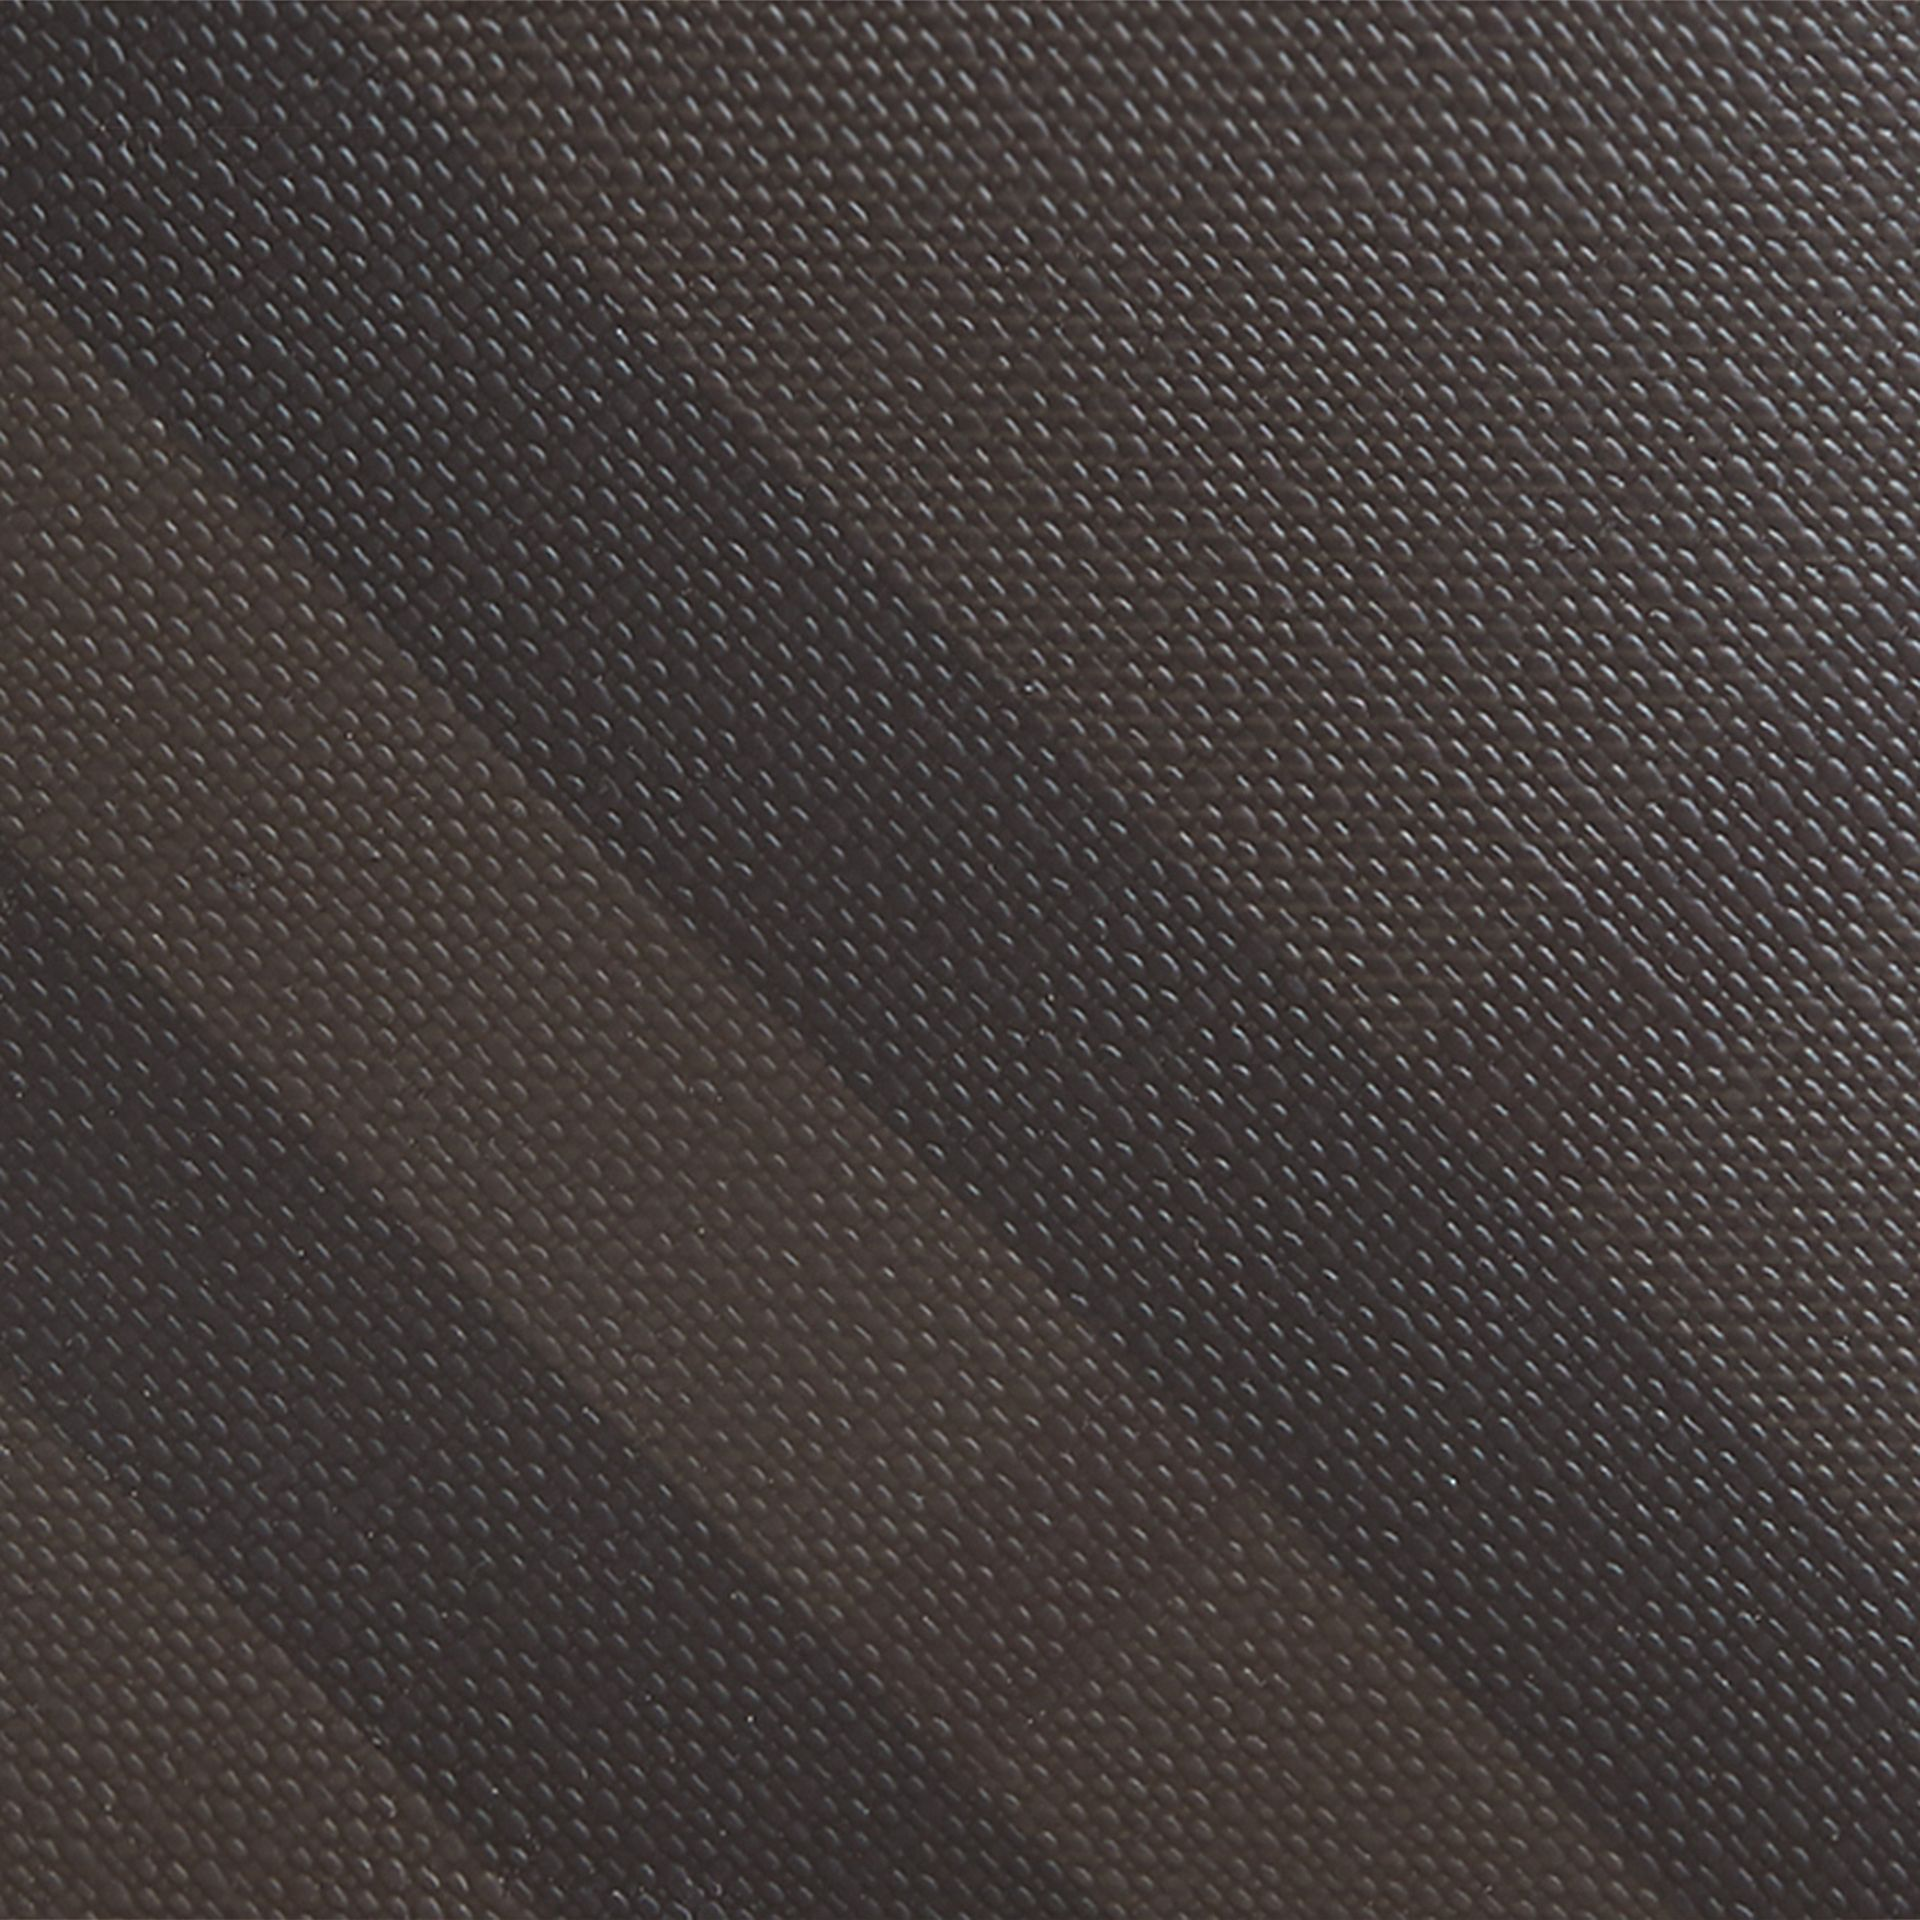 London Check International Bifold Coin Wallet in Chocolate/black - Men | Burberry - gallery image 2